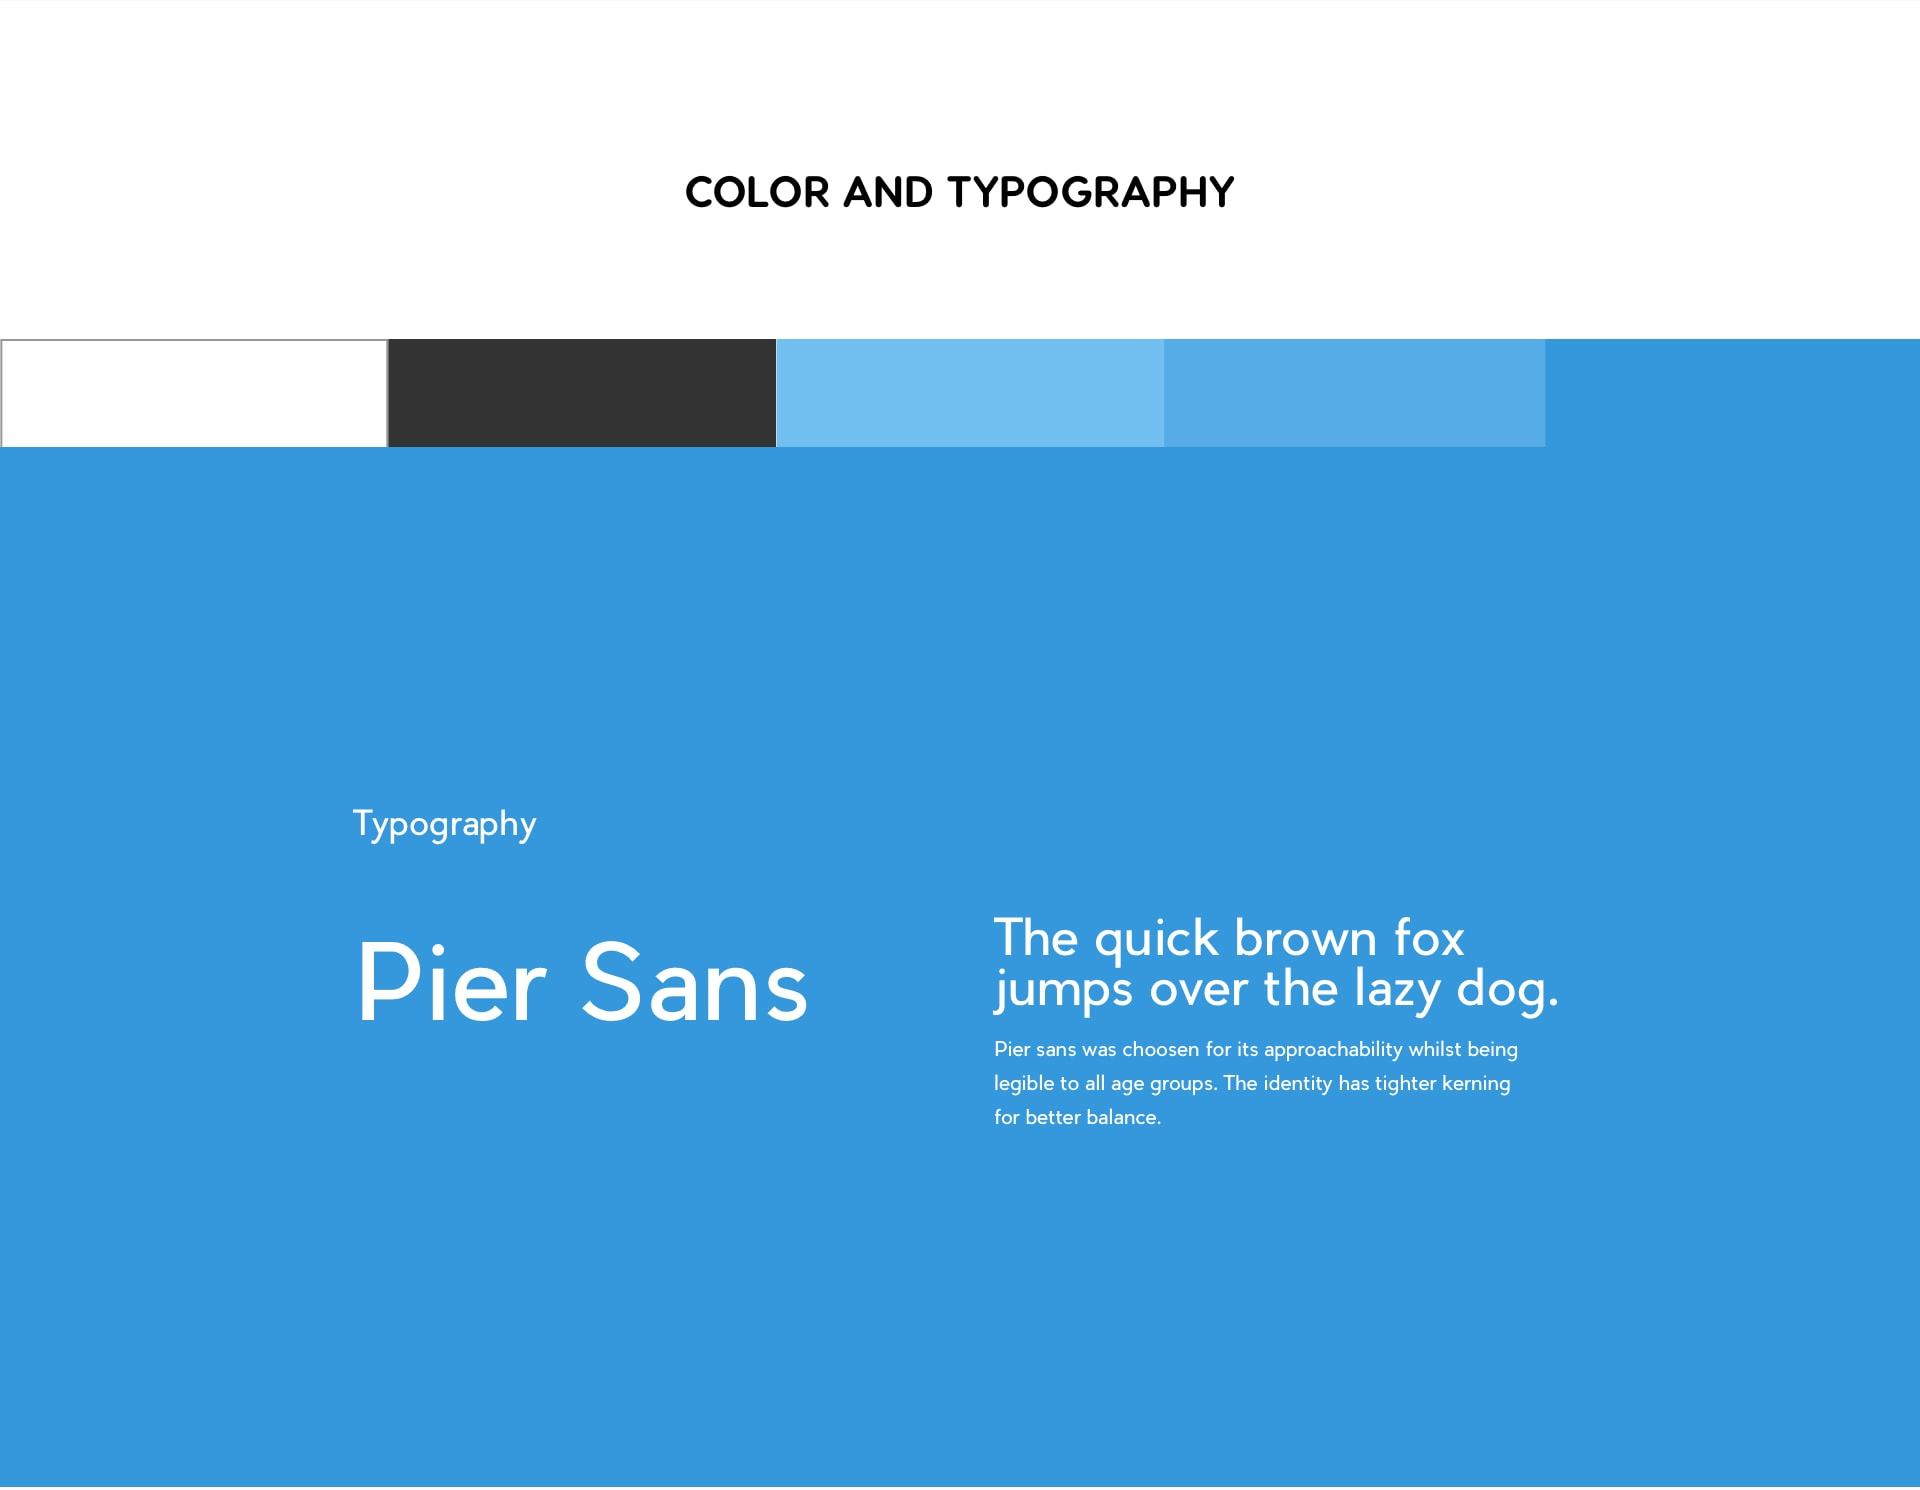 Color and typography